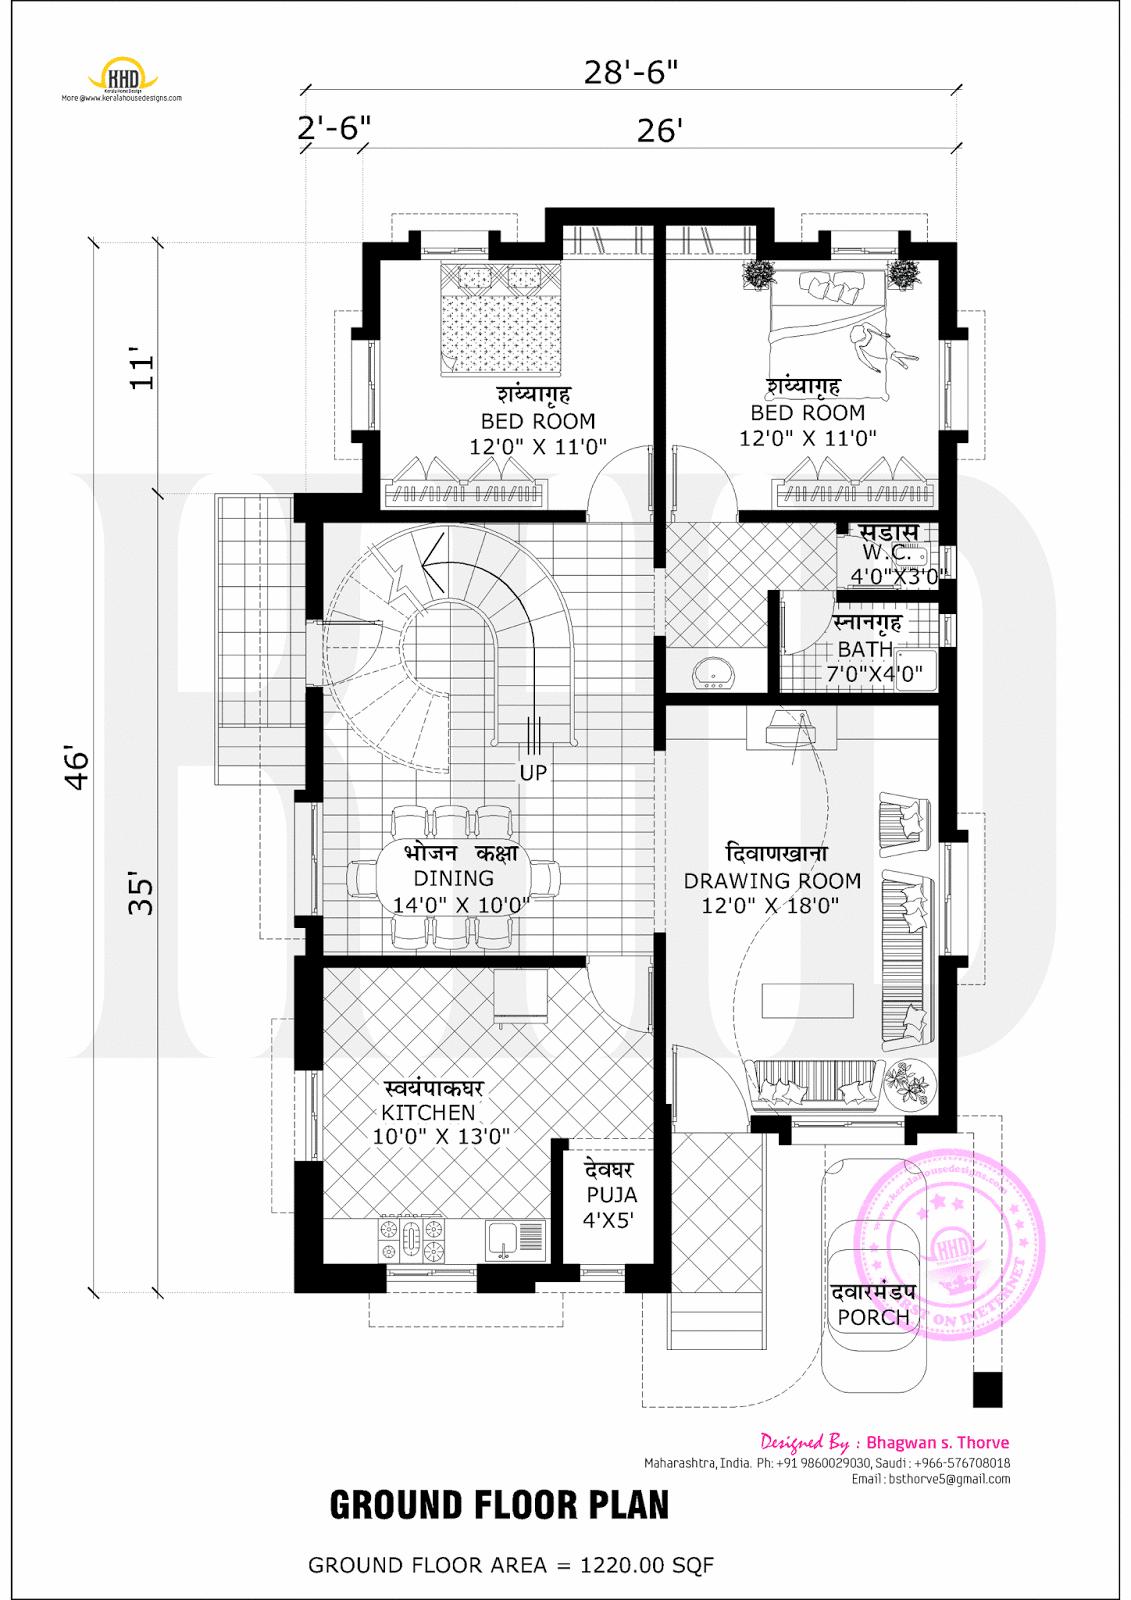 Awesome 3 Bedroom House Floor Plans India And View In 2020 Free Floor Plans Home Design Floor Plans Model House Plan